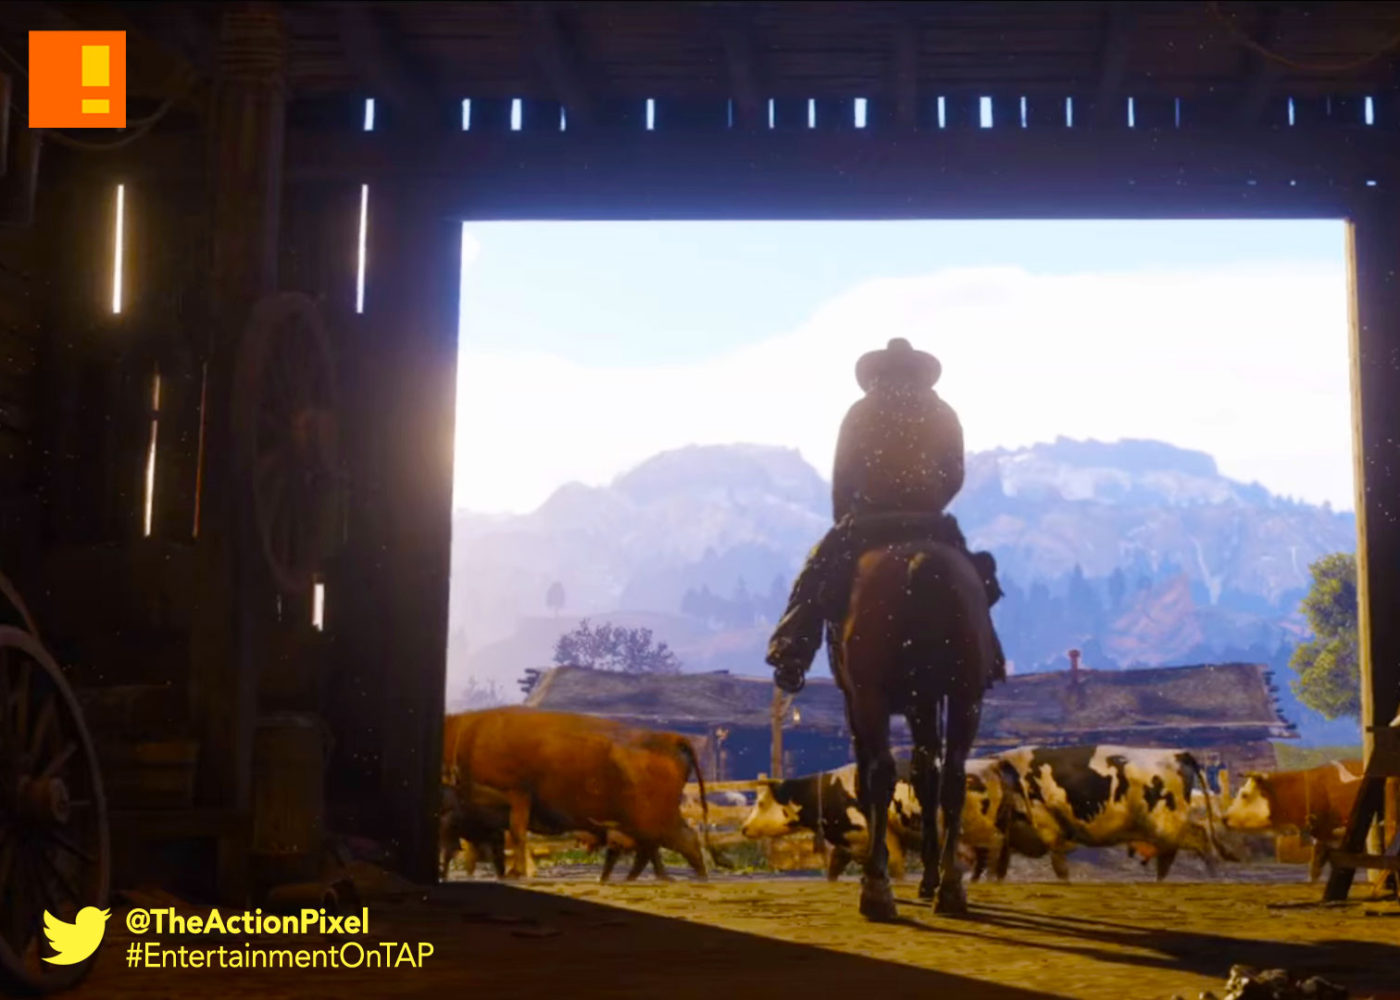 rockstar games, red dead redemption, entertainment on tap, the action pixel, rockstar games,trailer